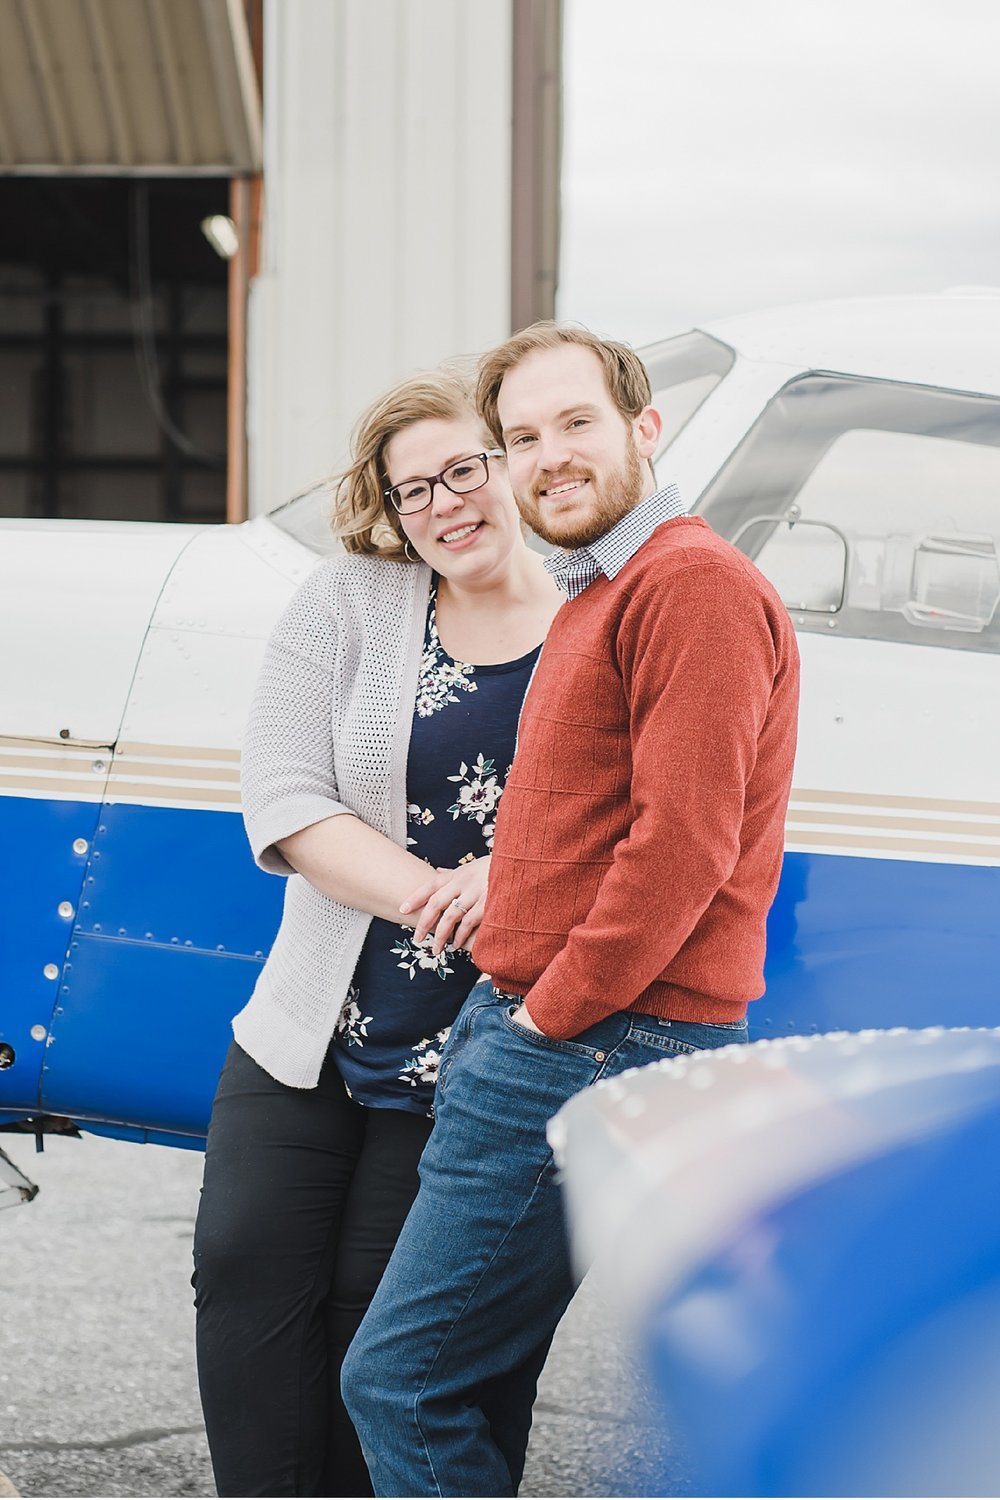 Lancaster airport Lititz Wedding photographer engagement session photo_2933.jpg